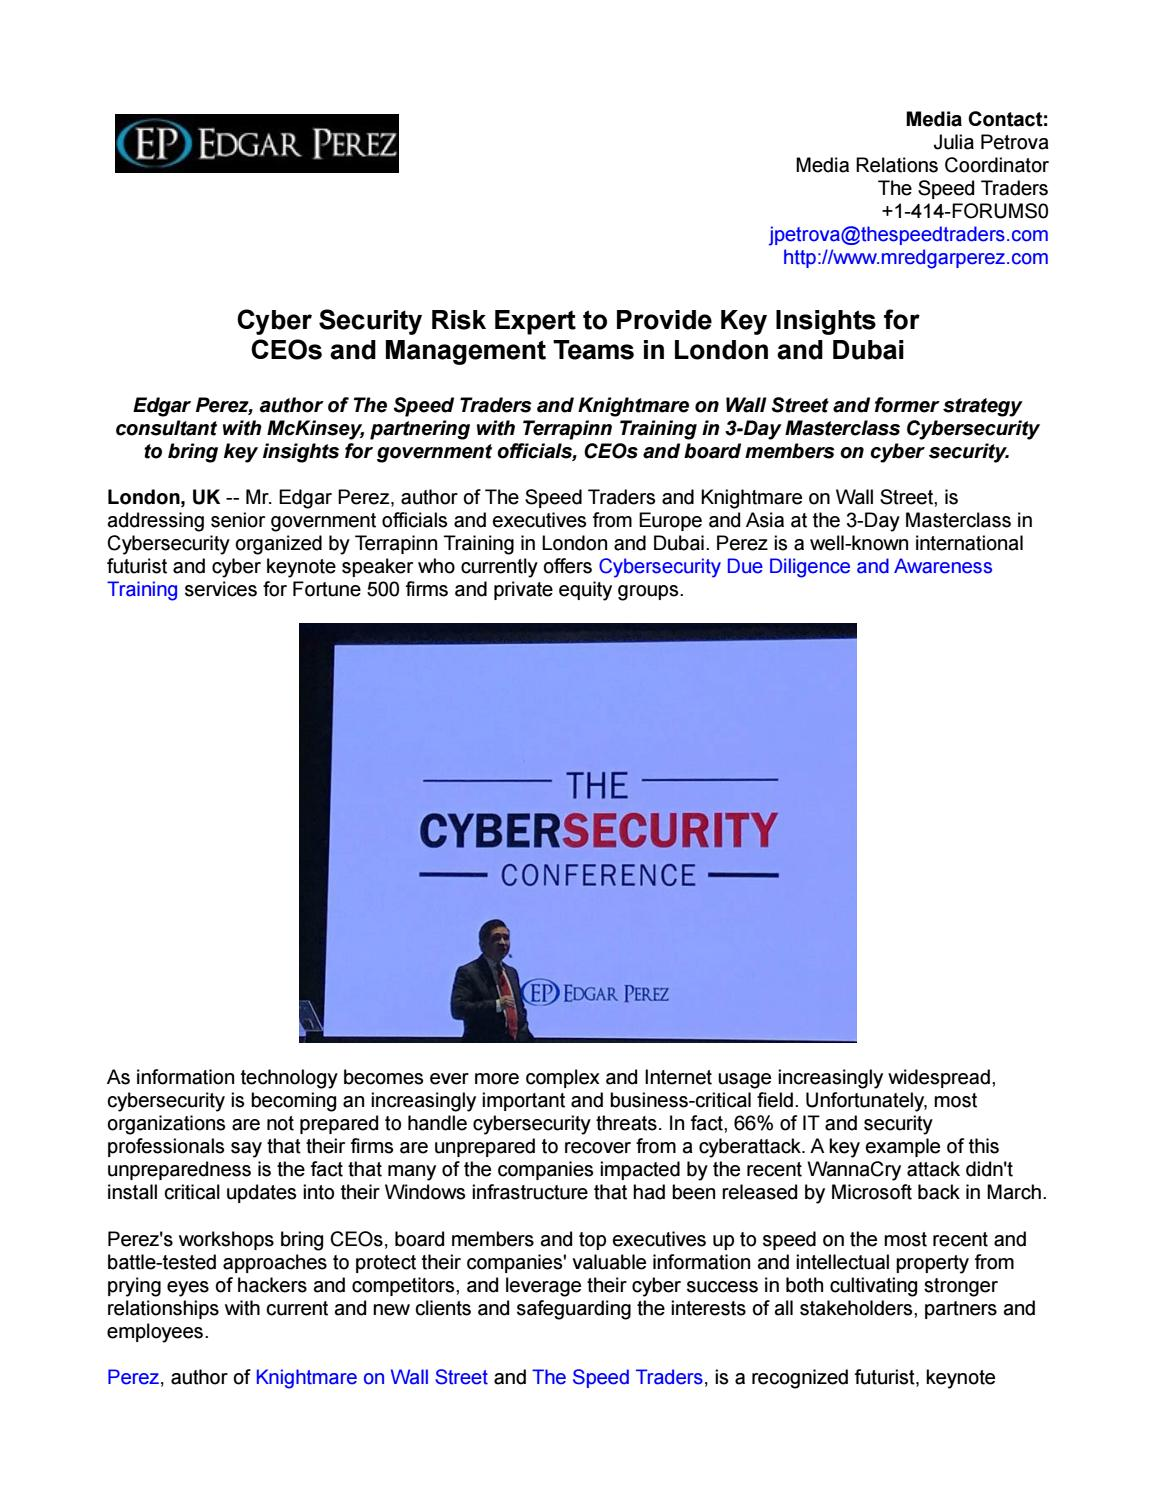 Cyber Security Risk Expert to Provide Key Insights for CEOs